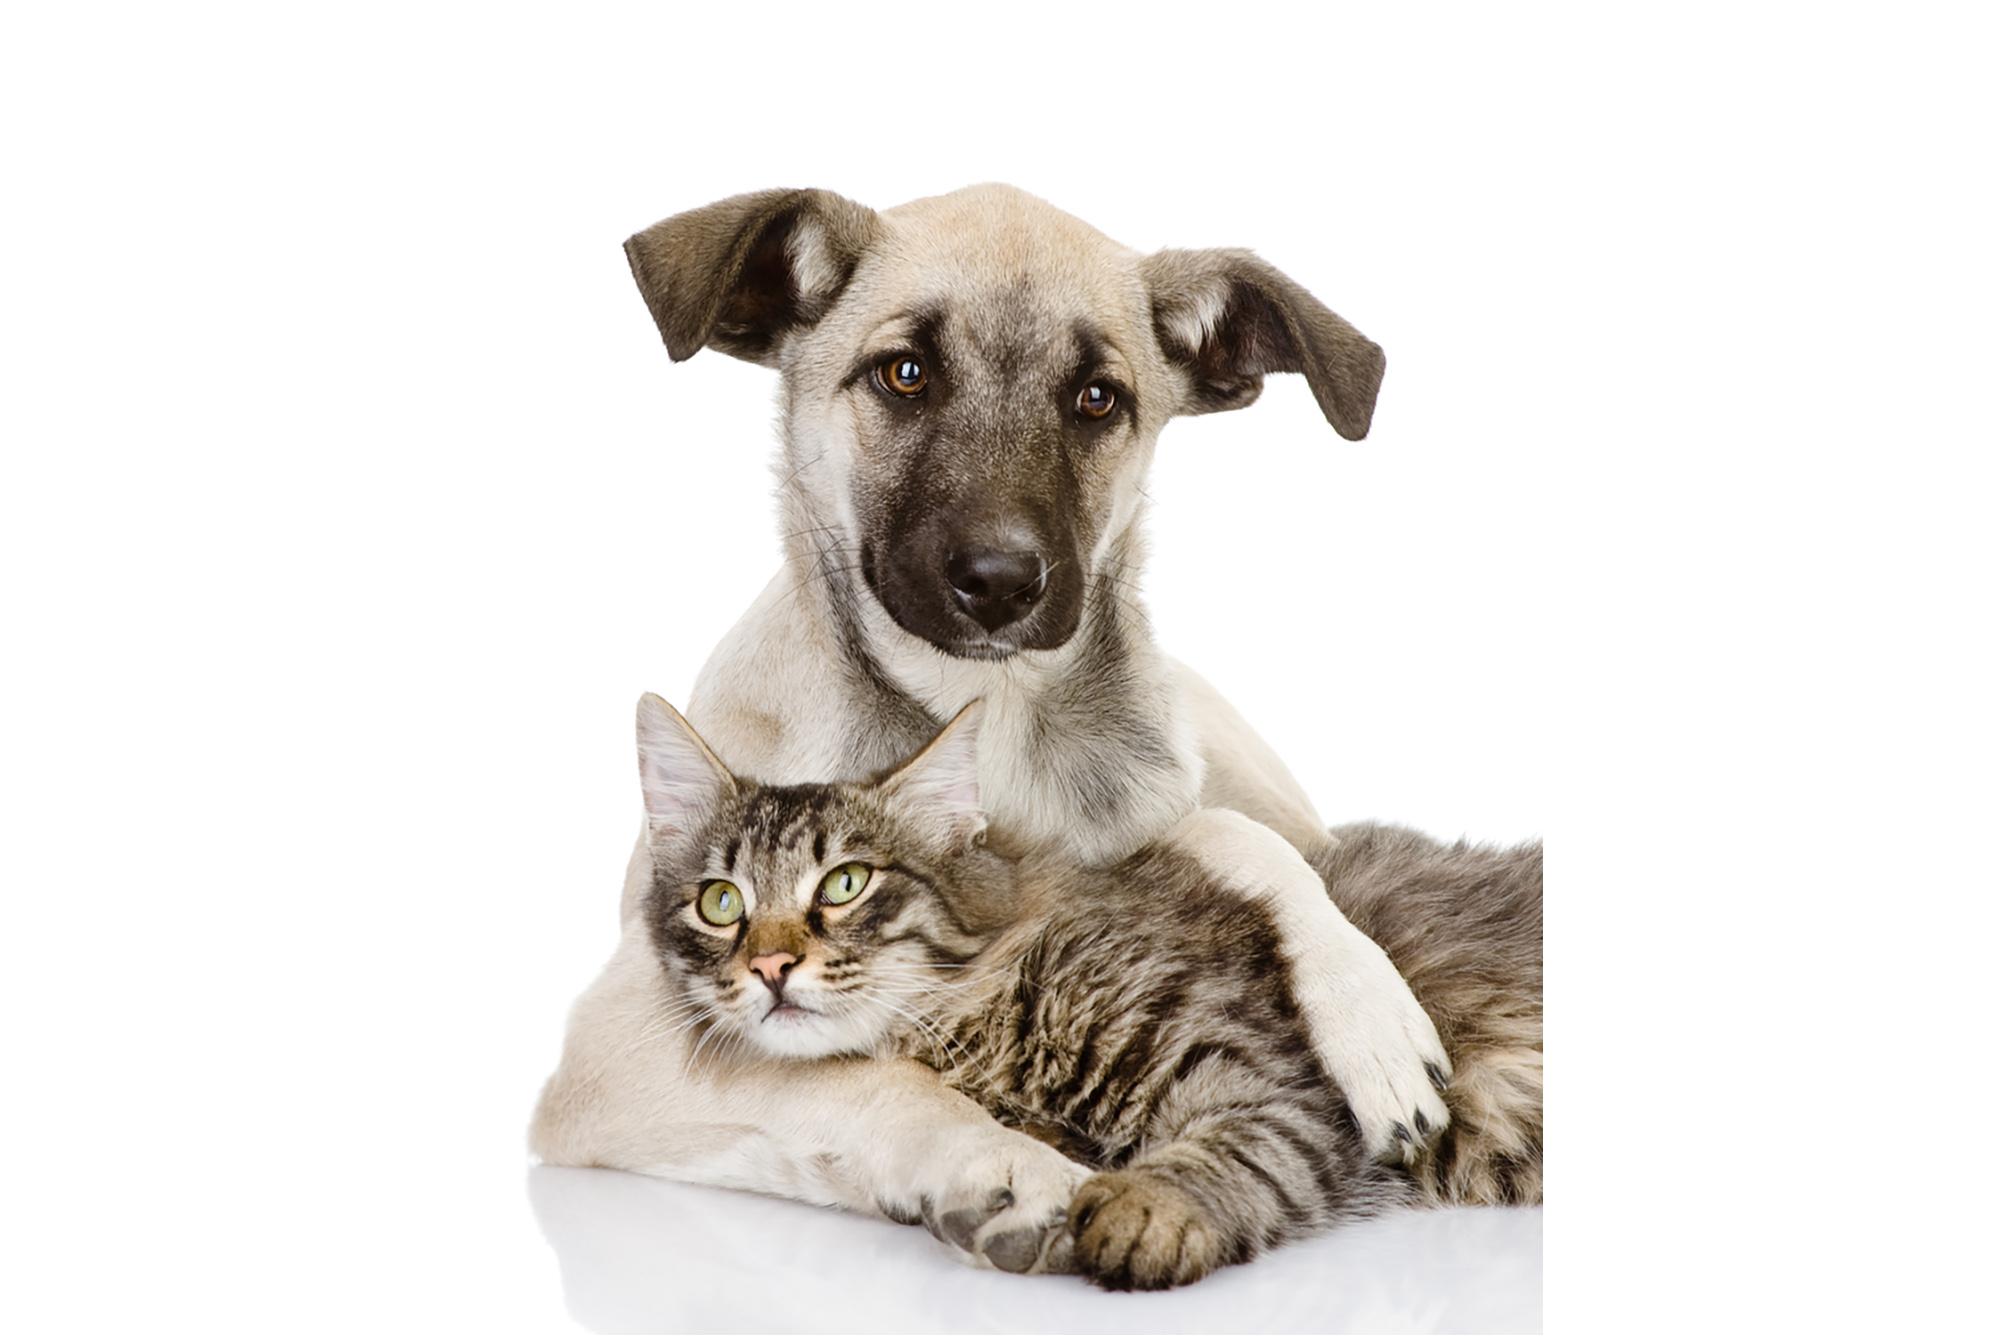 Does Covid-19 affect your pets?